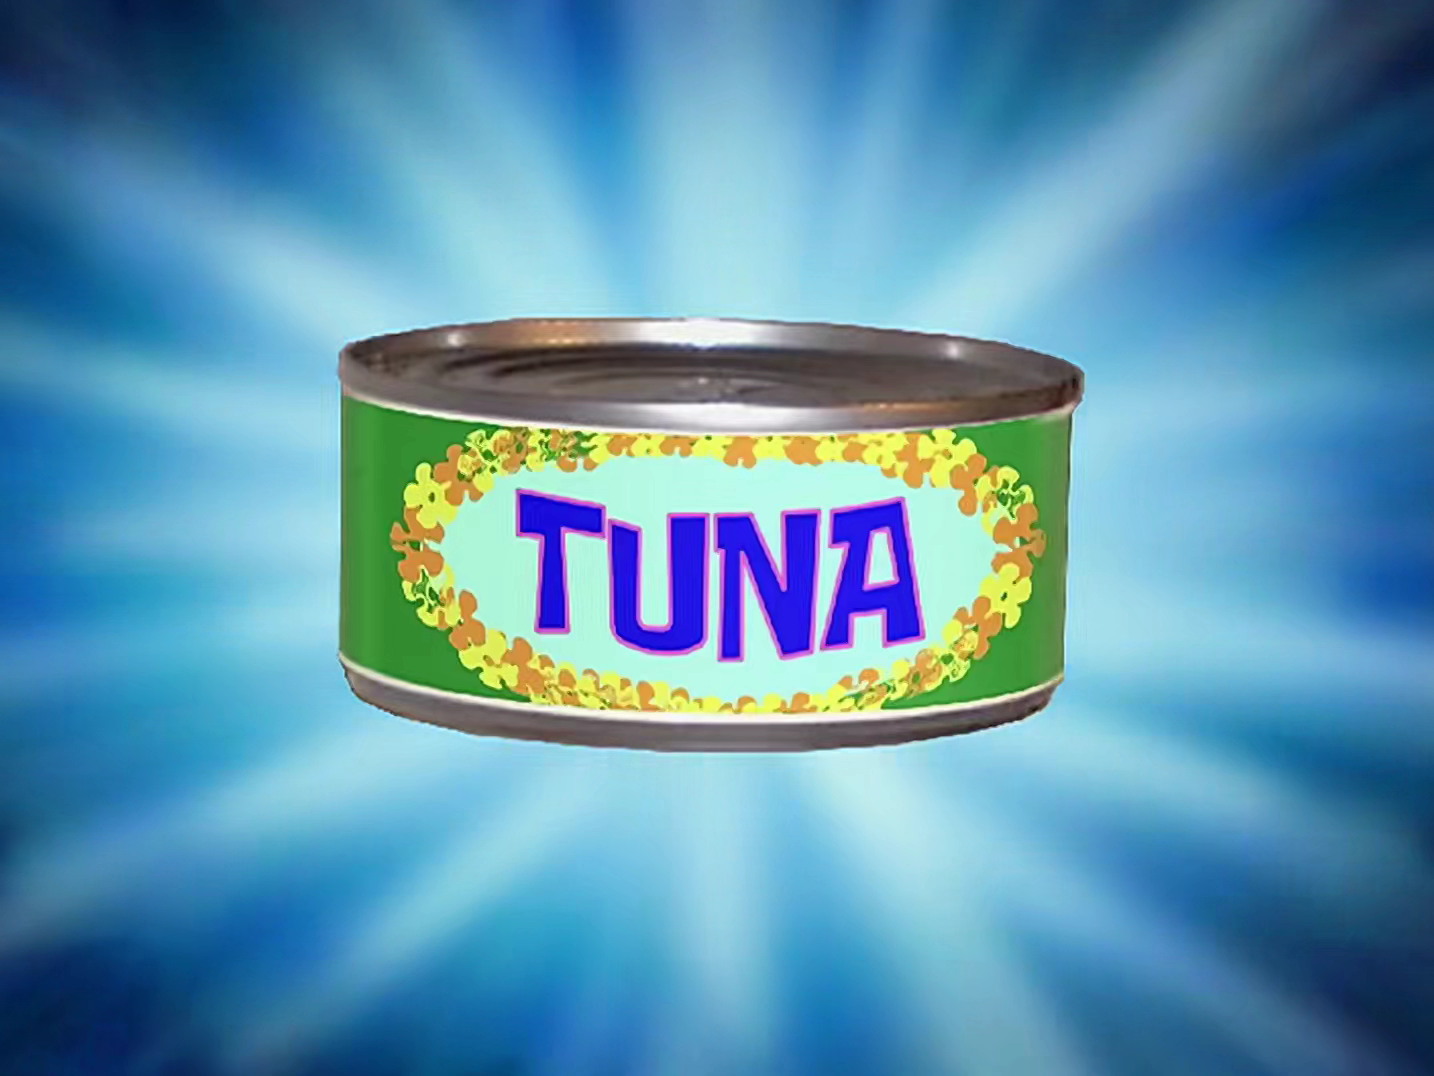 Tuna can with the smell of mayo